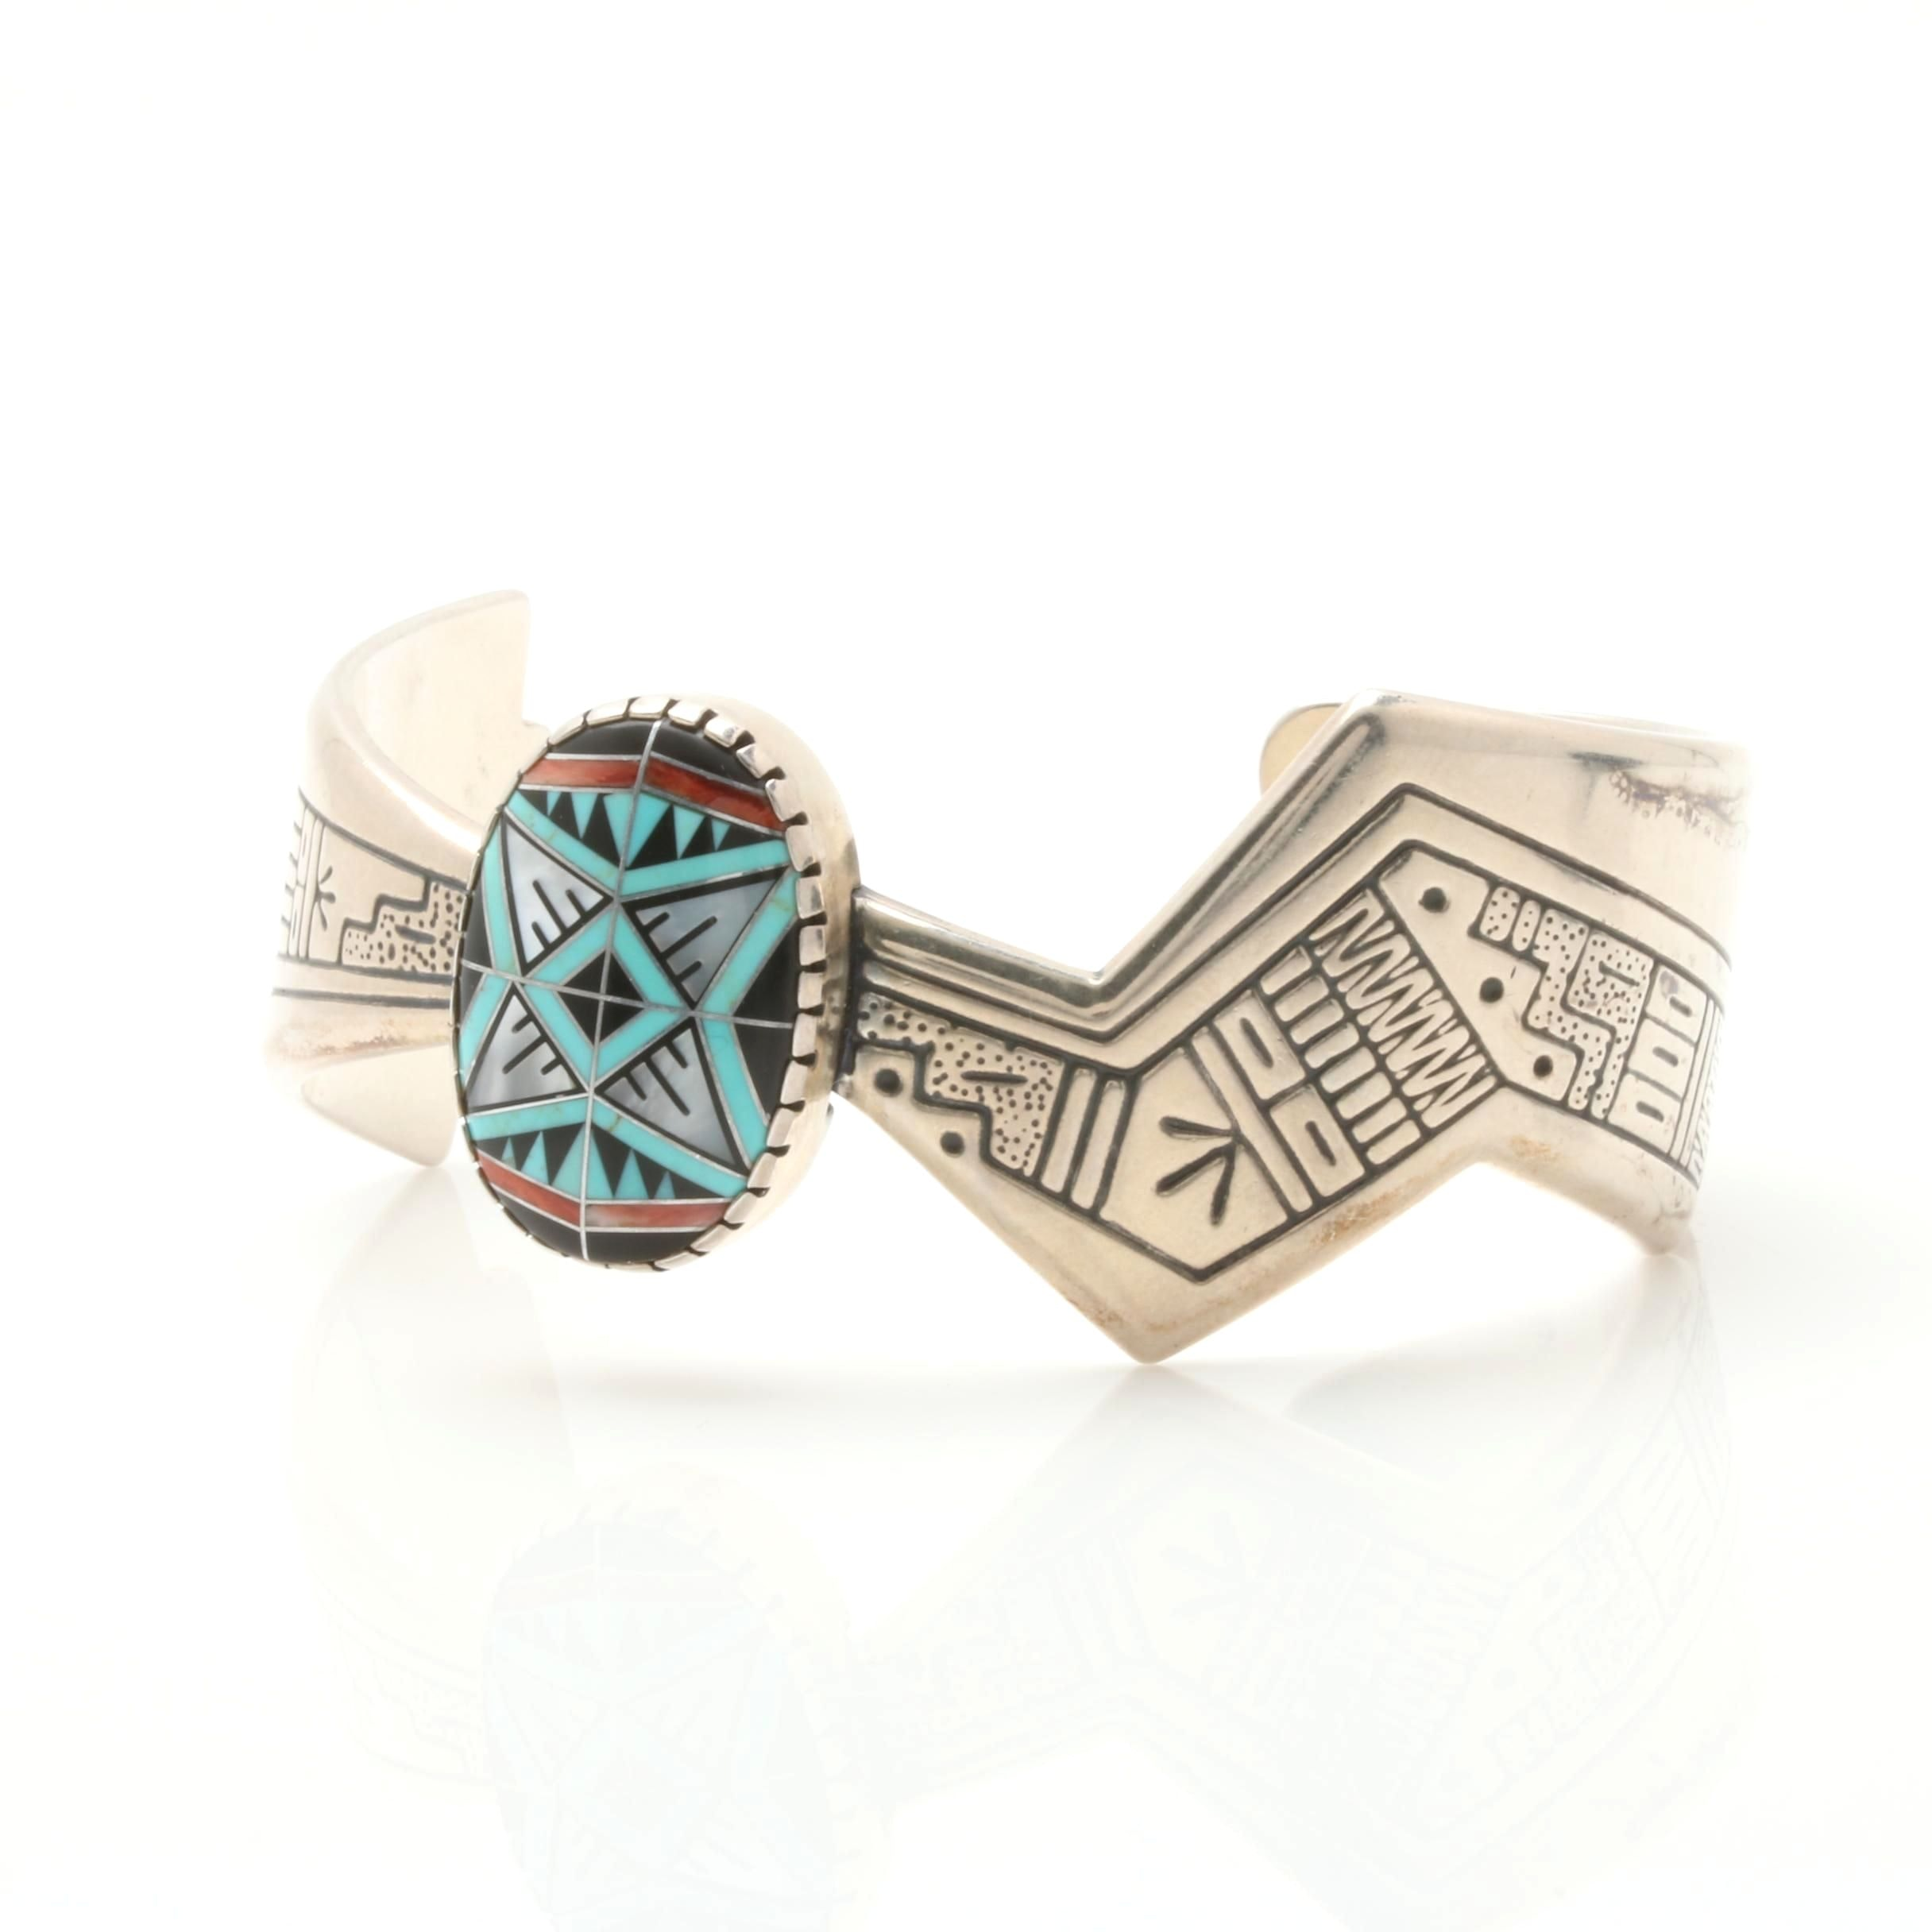 Carolyn Pollack by Roderick and Marilyn Tenorio Sterling Silver Inlaid Cuff